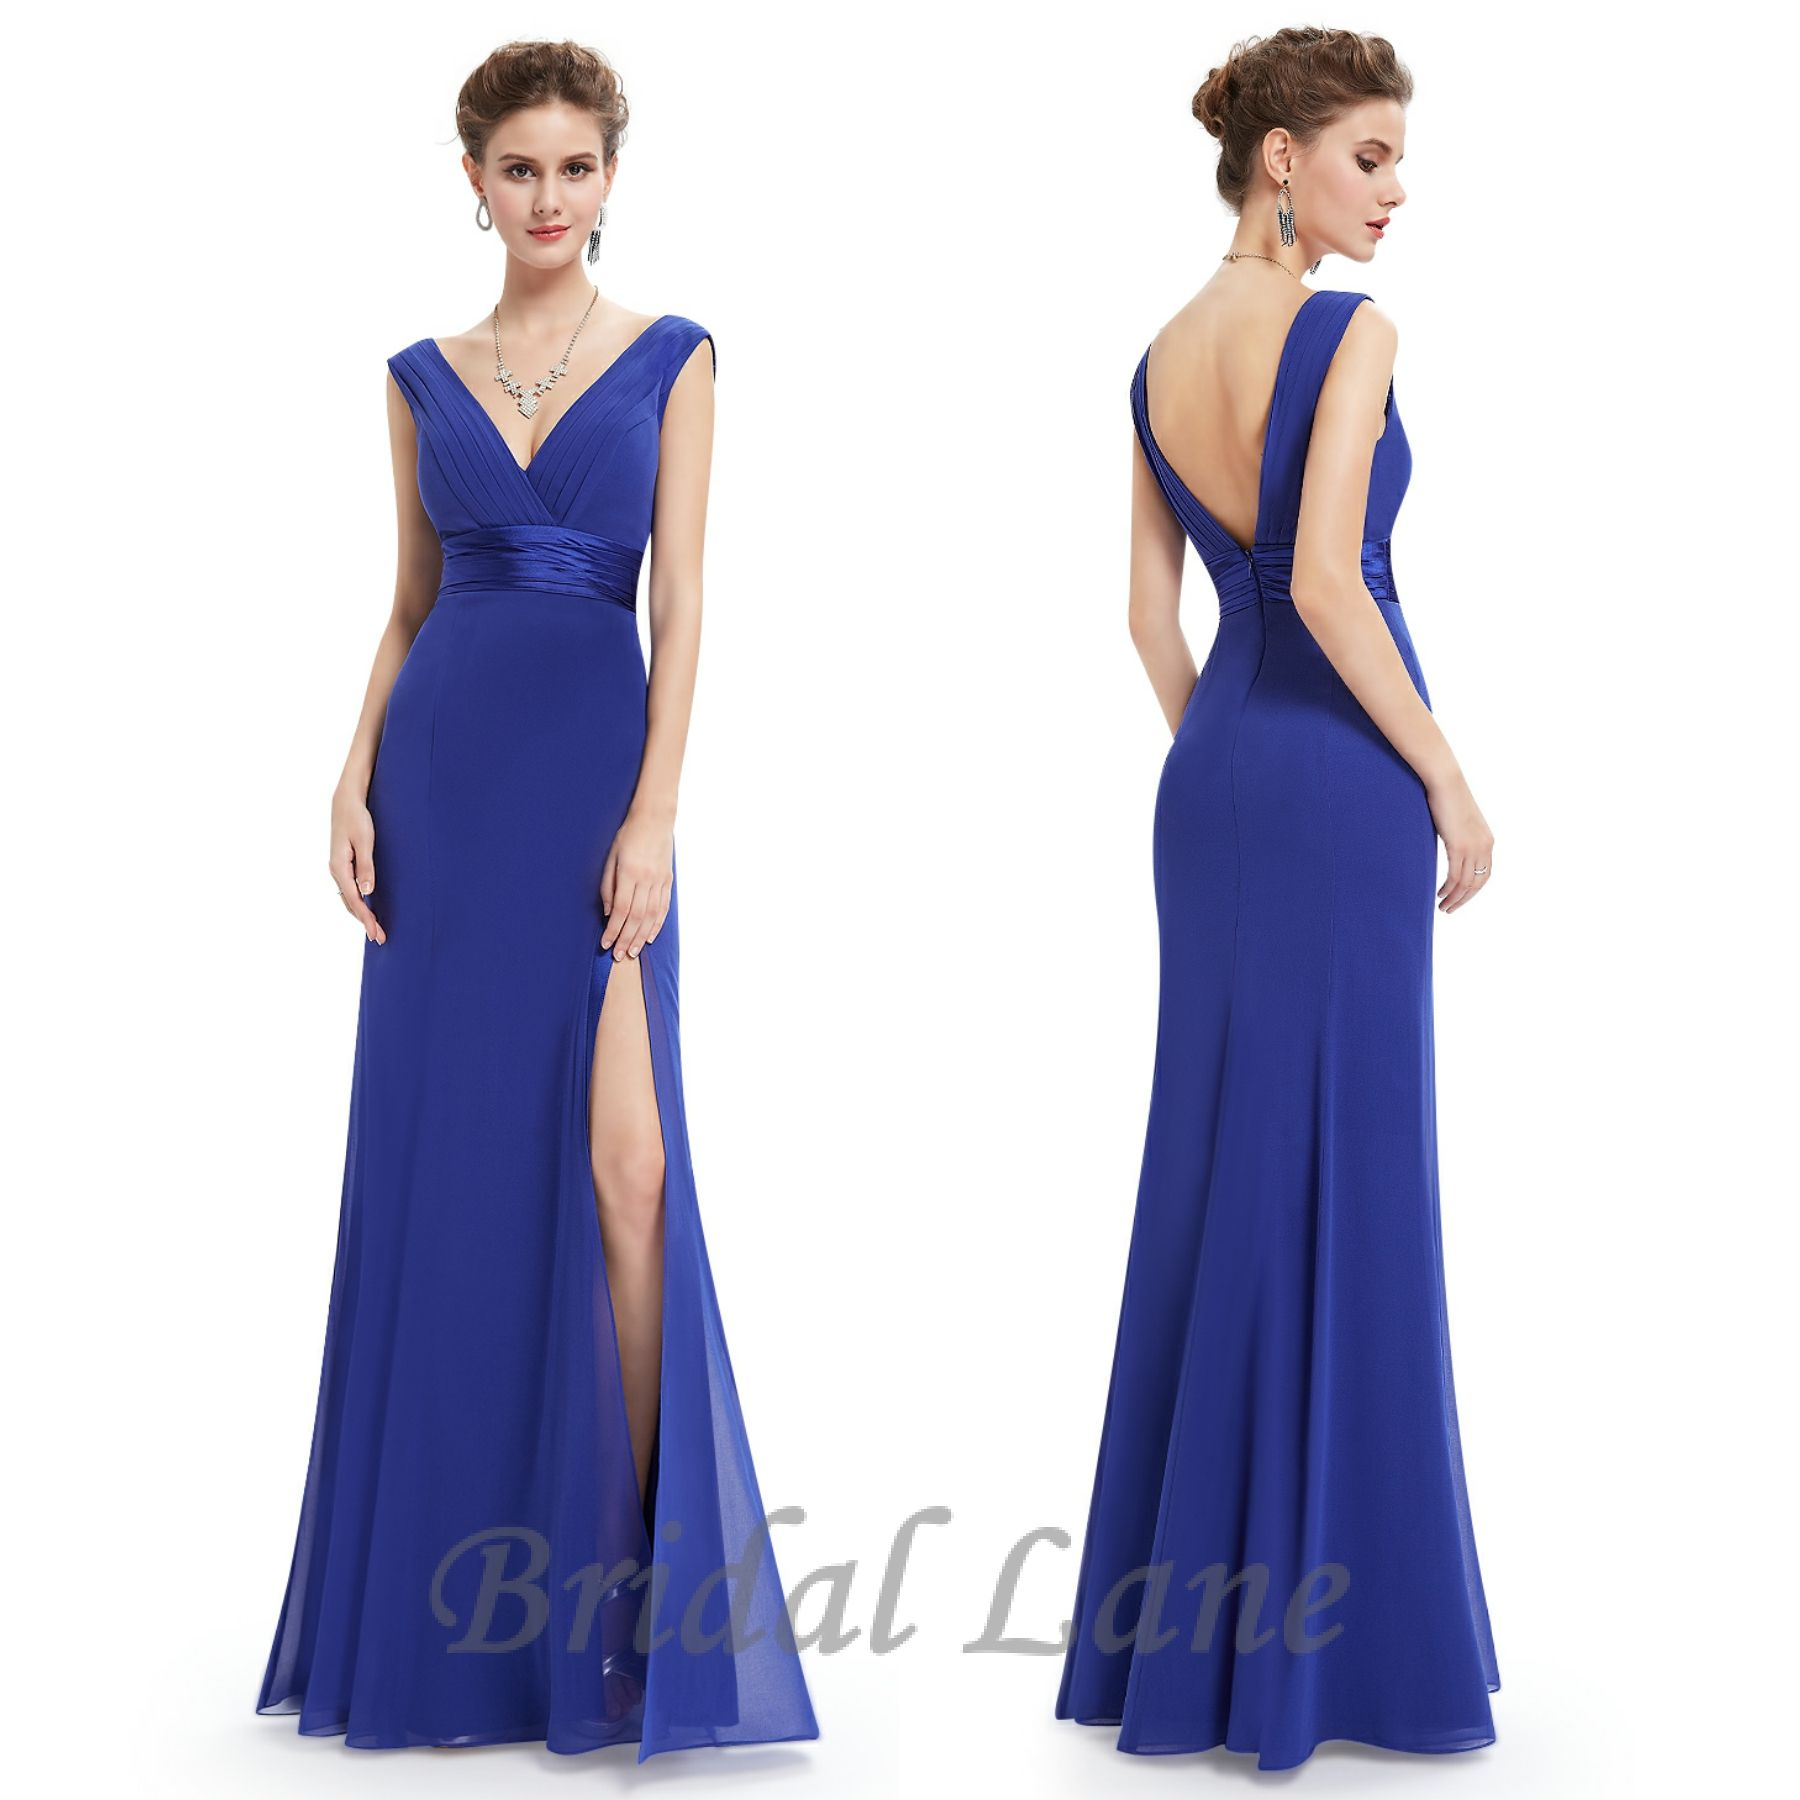 Royal blue evening dresses with slit for matric ball   matric farewell in  Cape Town - Bridal Lane  3 301e13dcc416